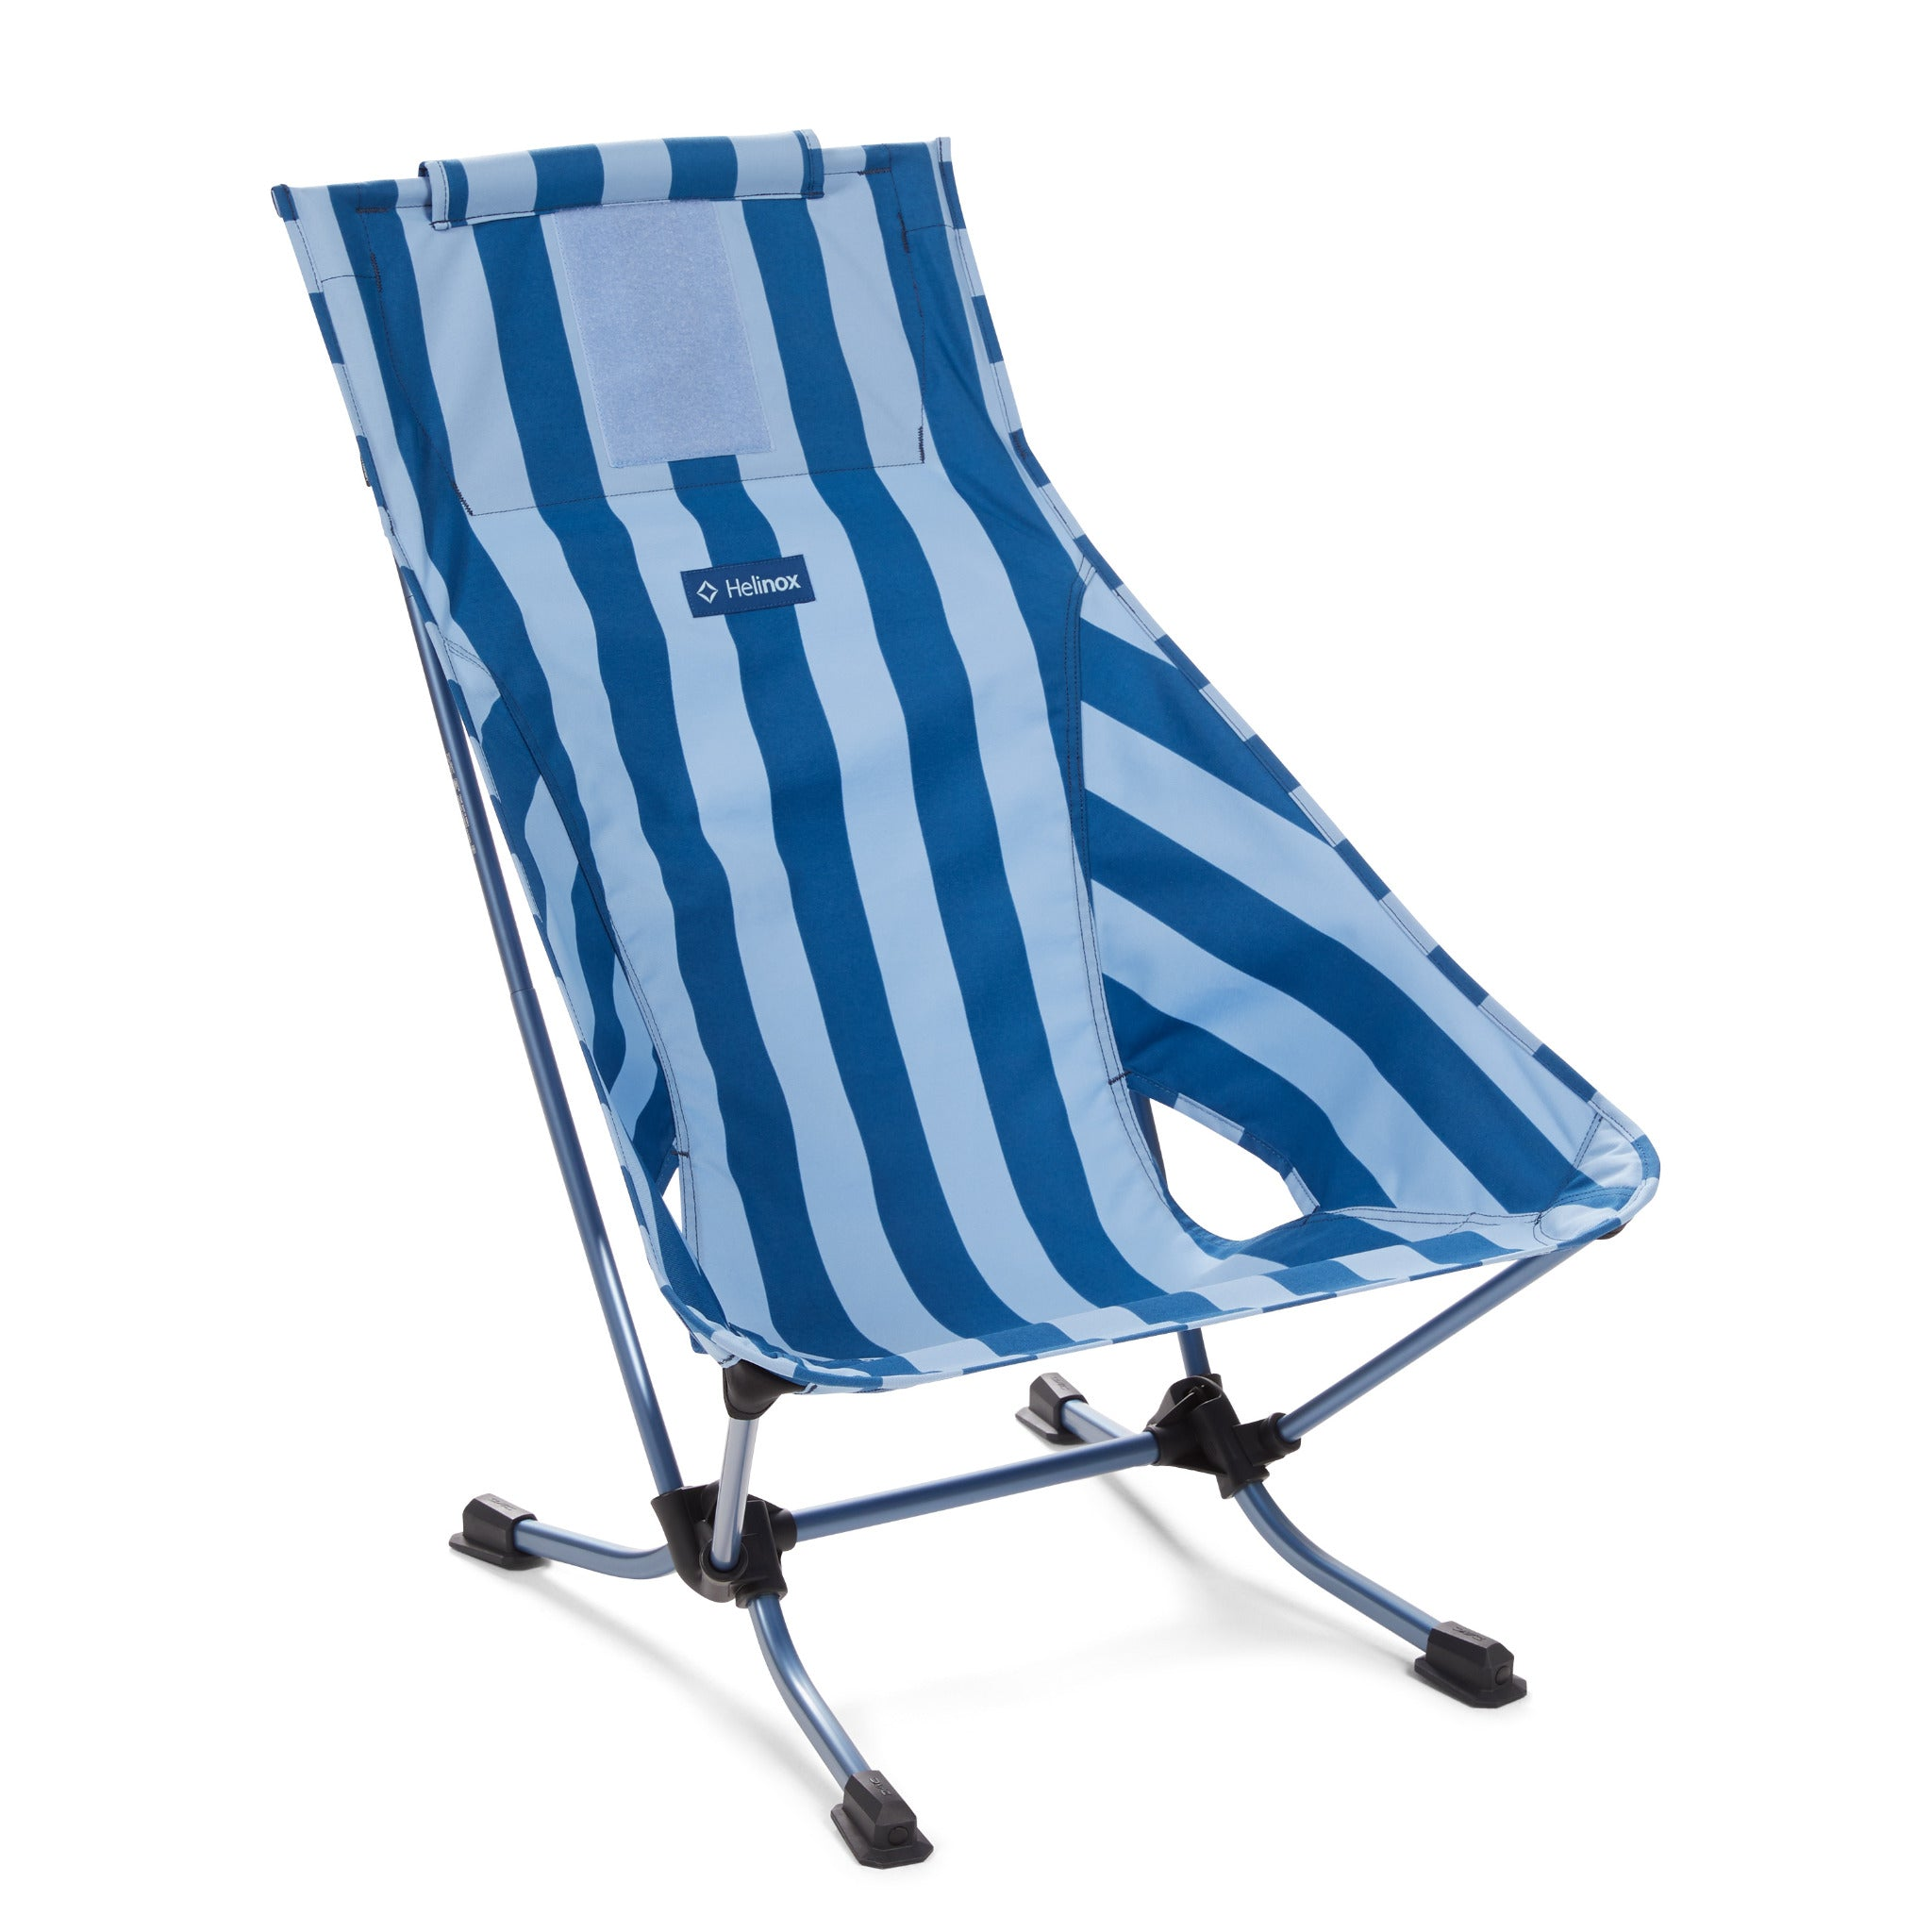 Helinox Beach Chair Lightweight Compact Crimson Lower-Profile Collapsible Camping Chair